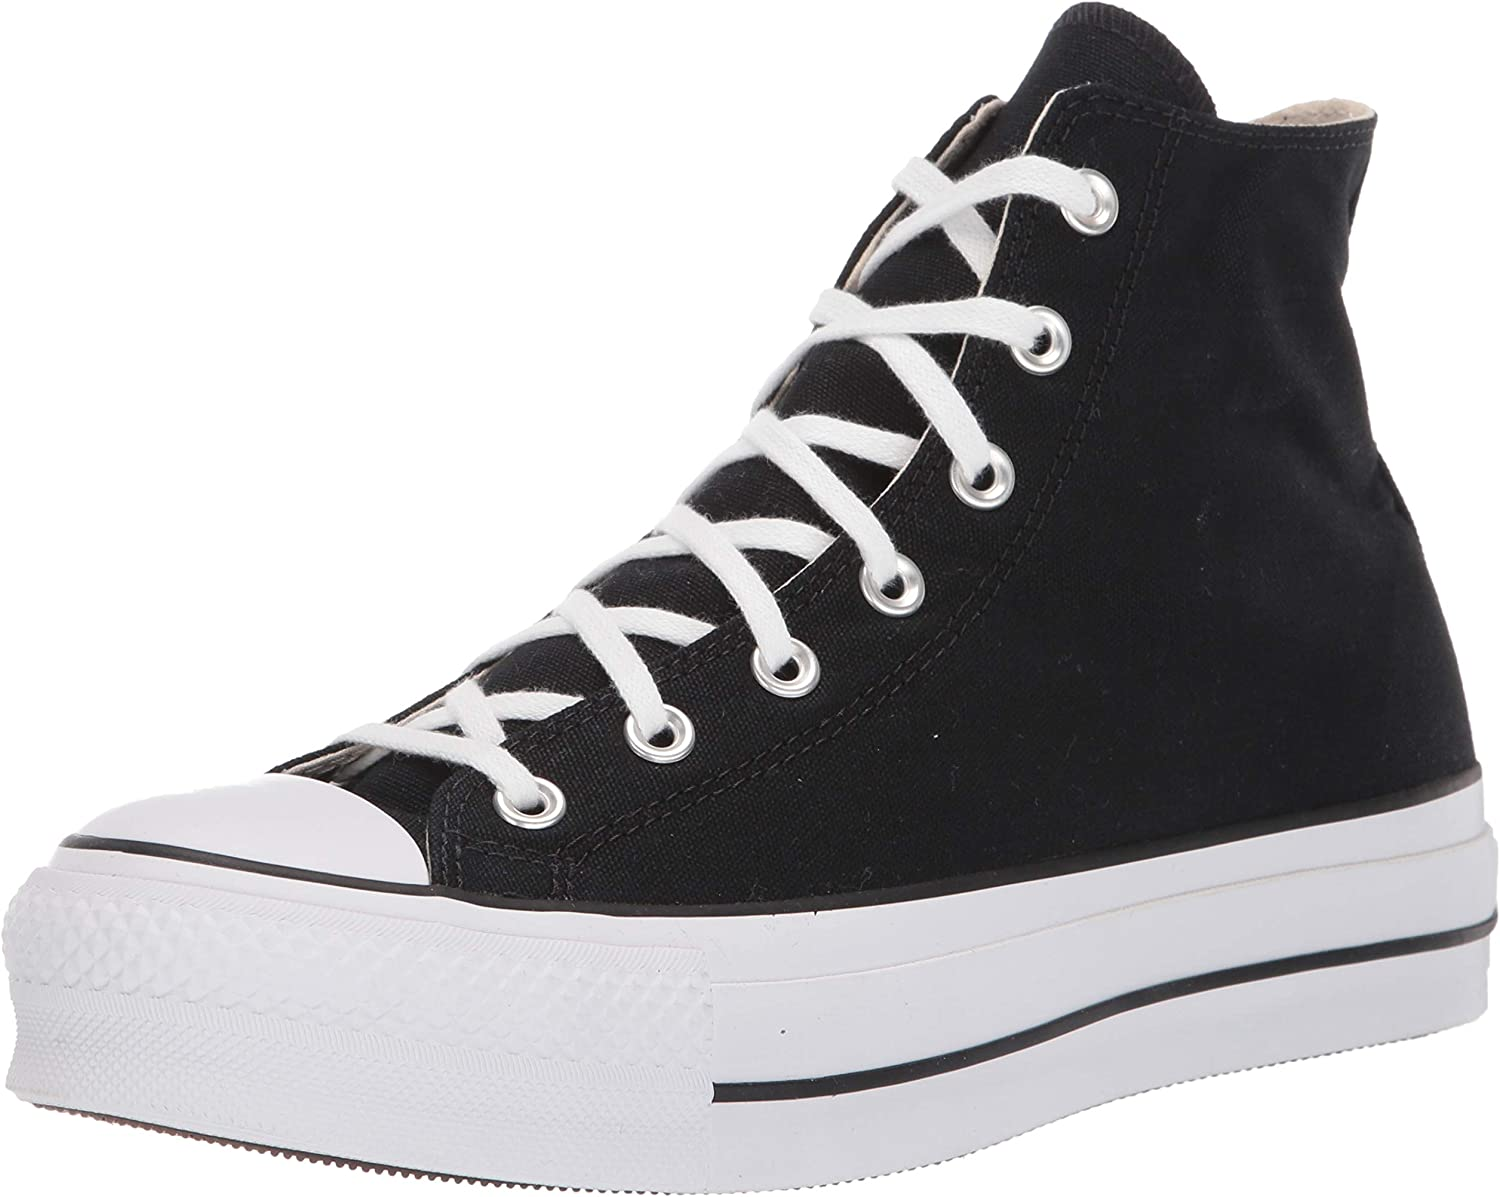 Converse CTAS Lift Hi Black White, Baskets Hautes Mixte Adulte